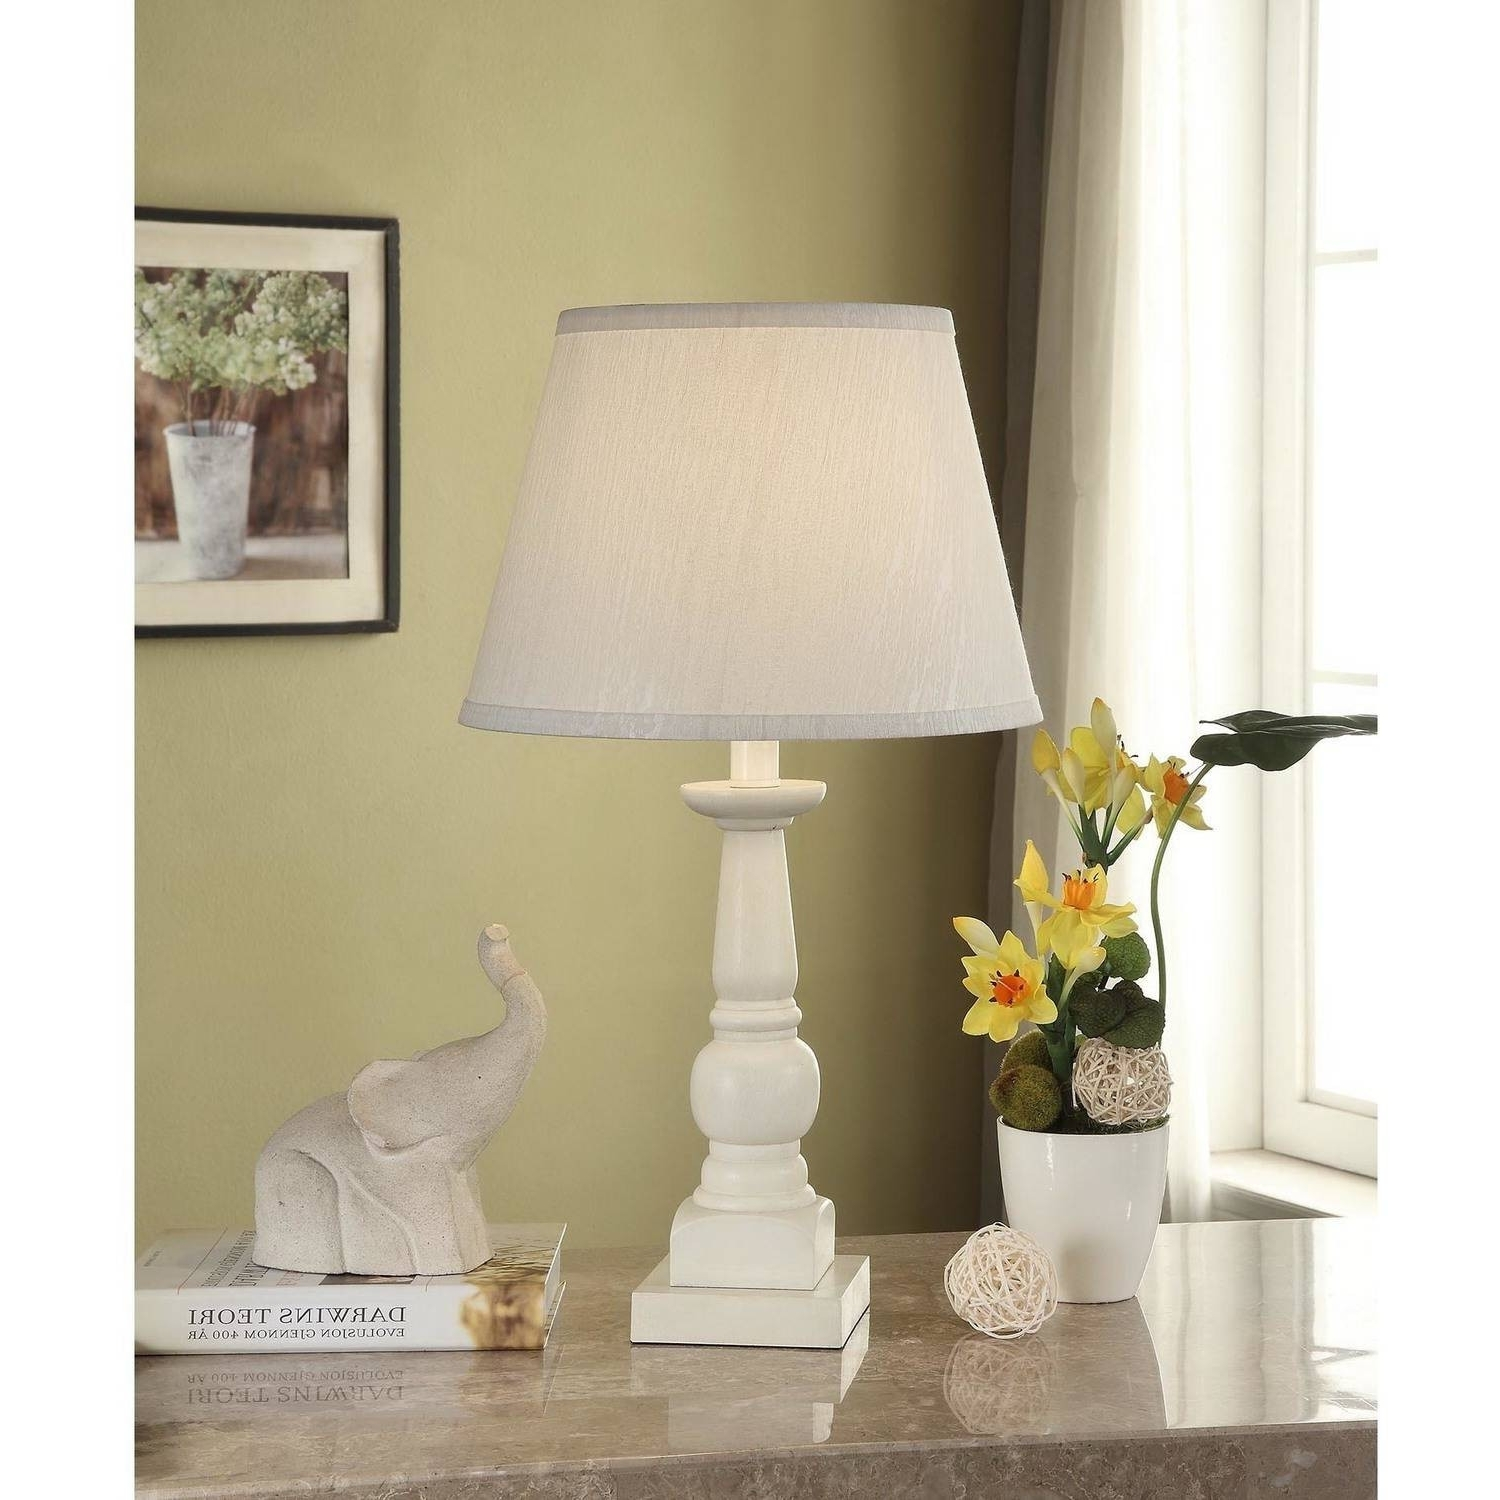 Tall Table Lamps For Living Room Beautiful Intriguing Wooden Sculpt Throughout Trendy Tall Living Room Table Lamps (View 15 of 15)